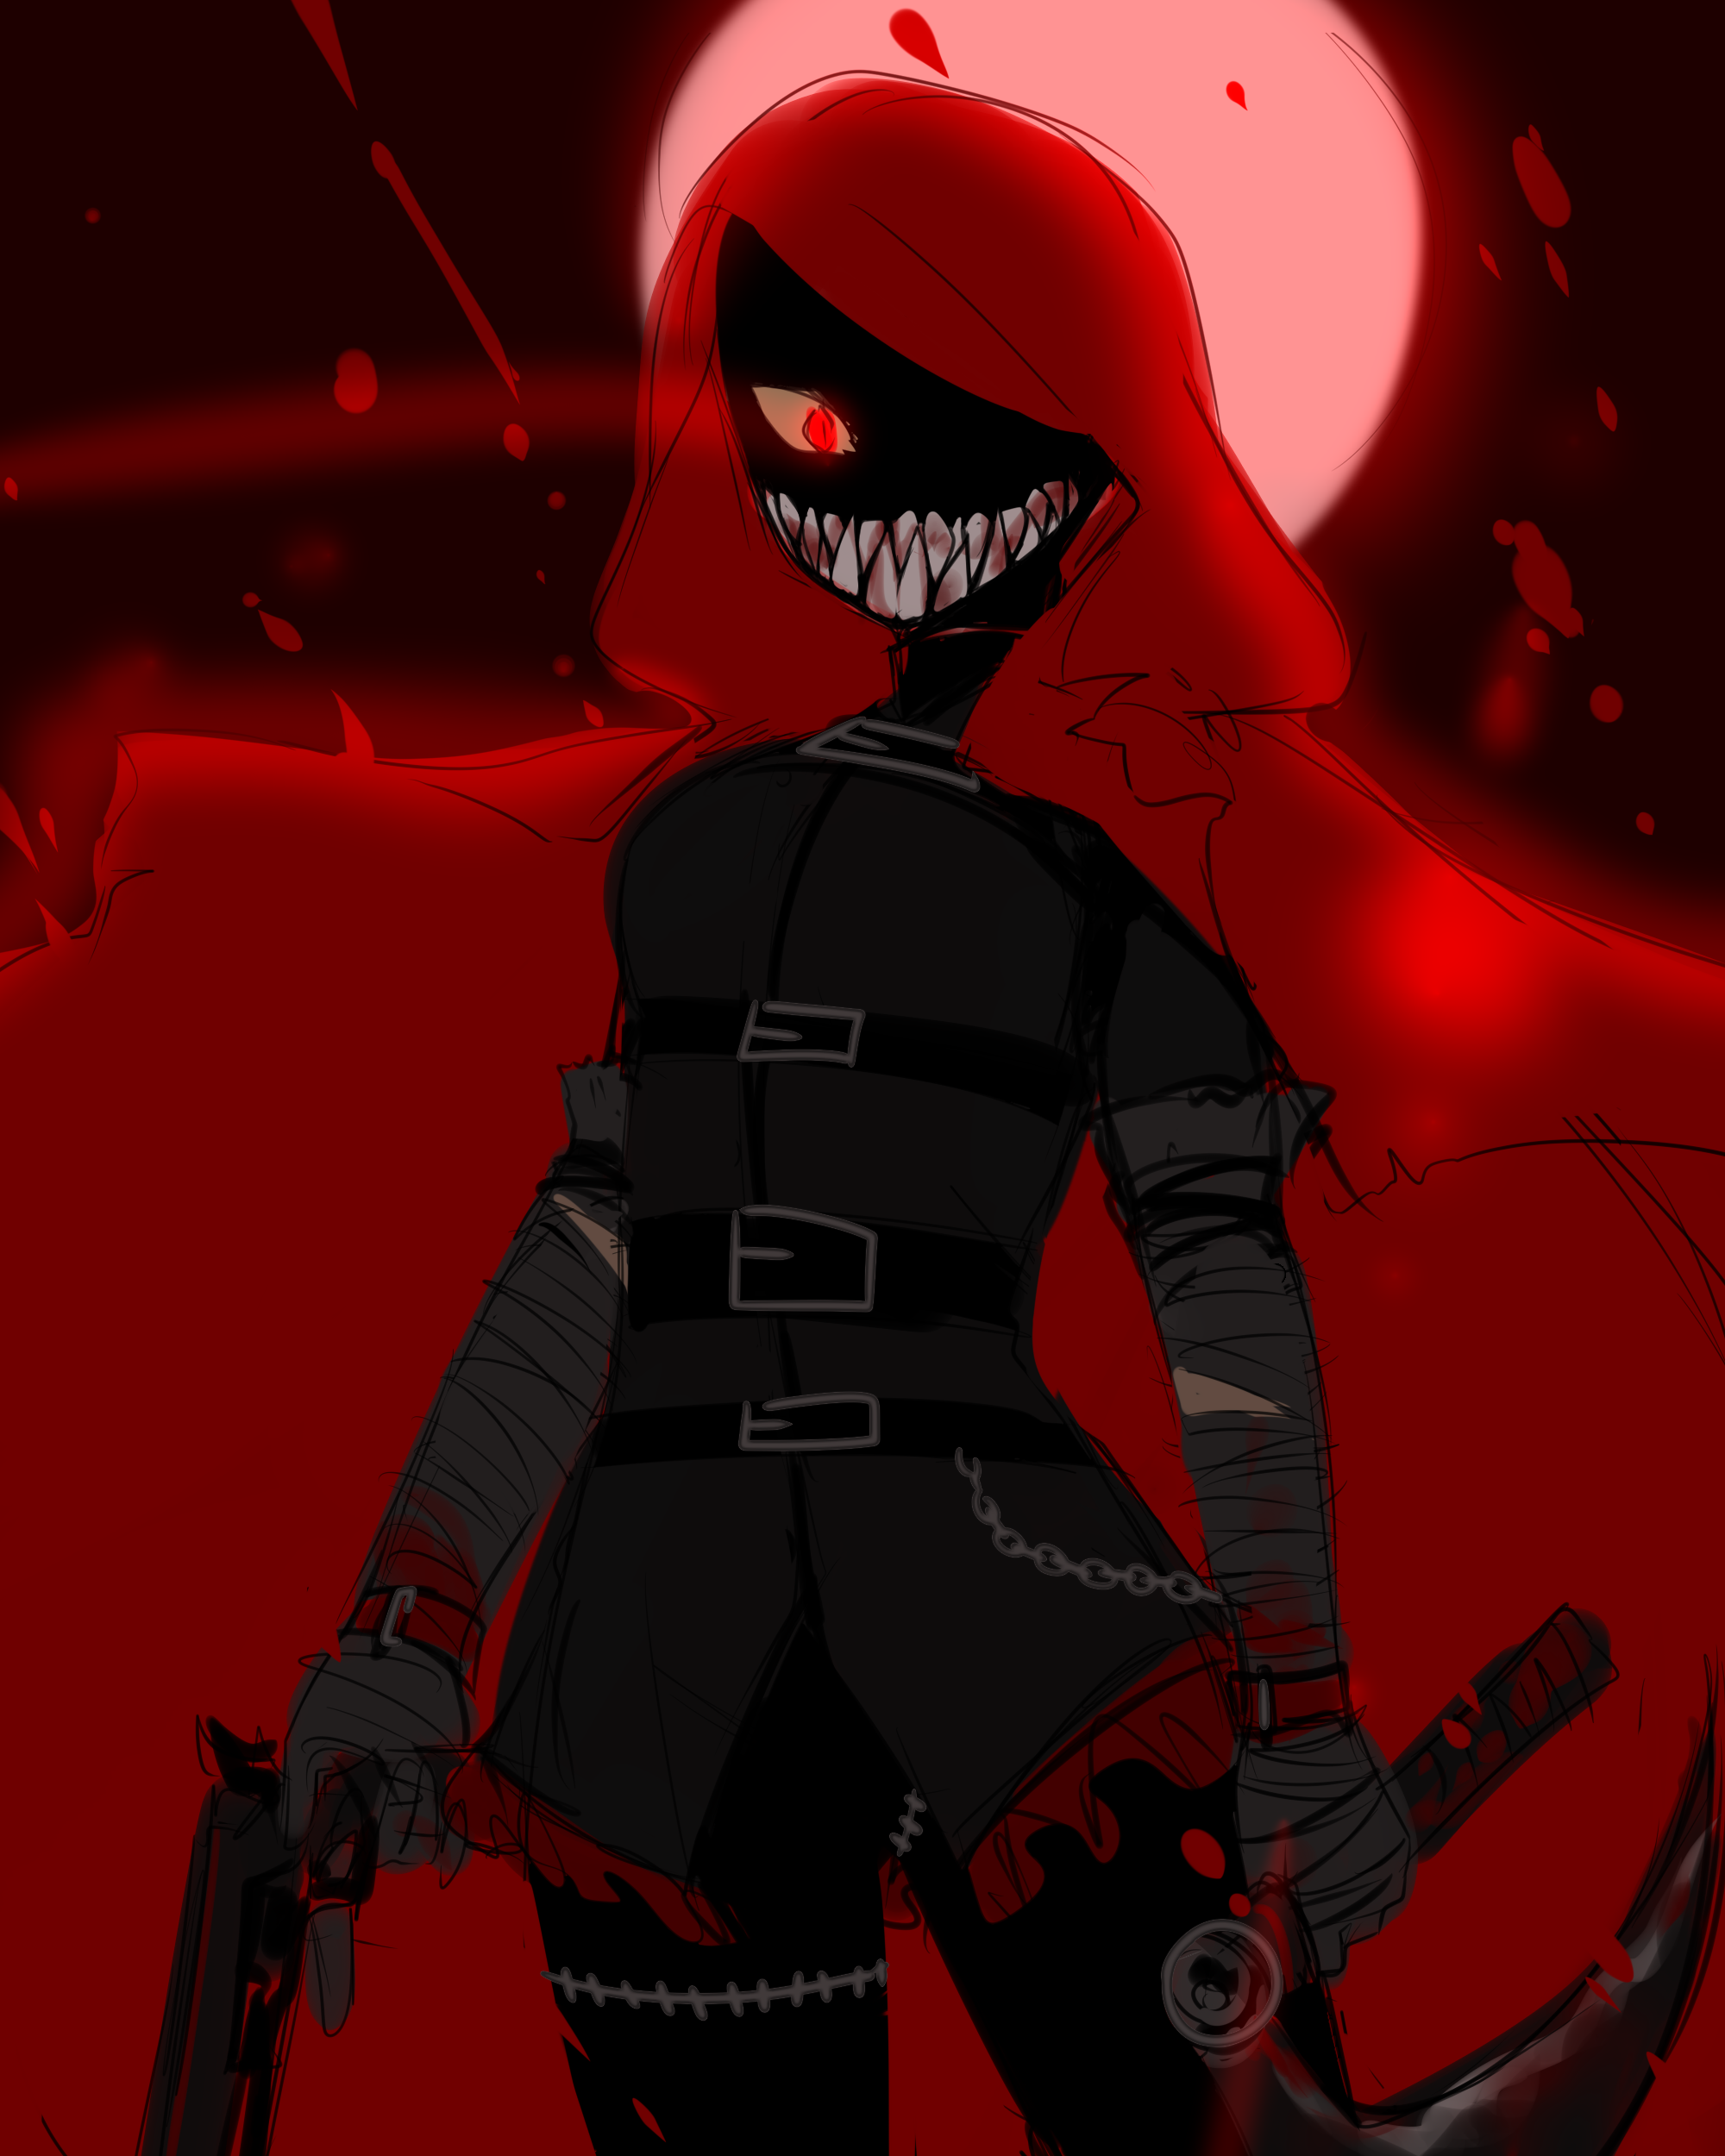 Little Red Riding Hooded Mercenary | Lobotomy Corporation in 2020 | Lobotomy, Corporate, Know your meme